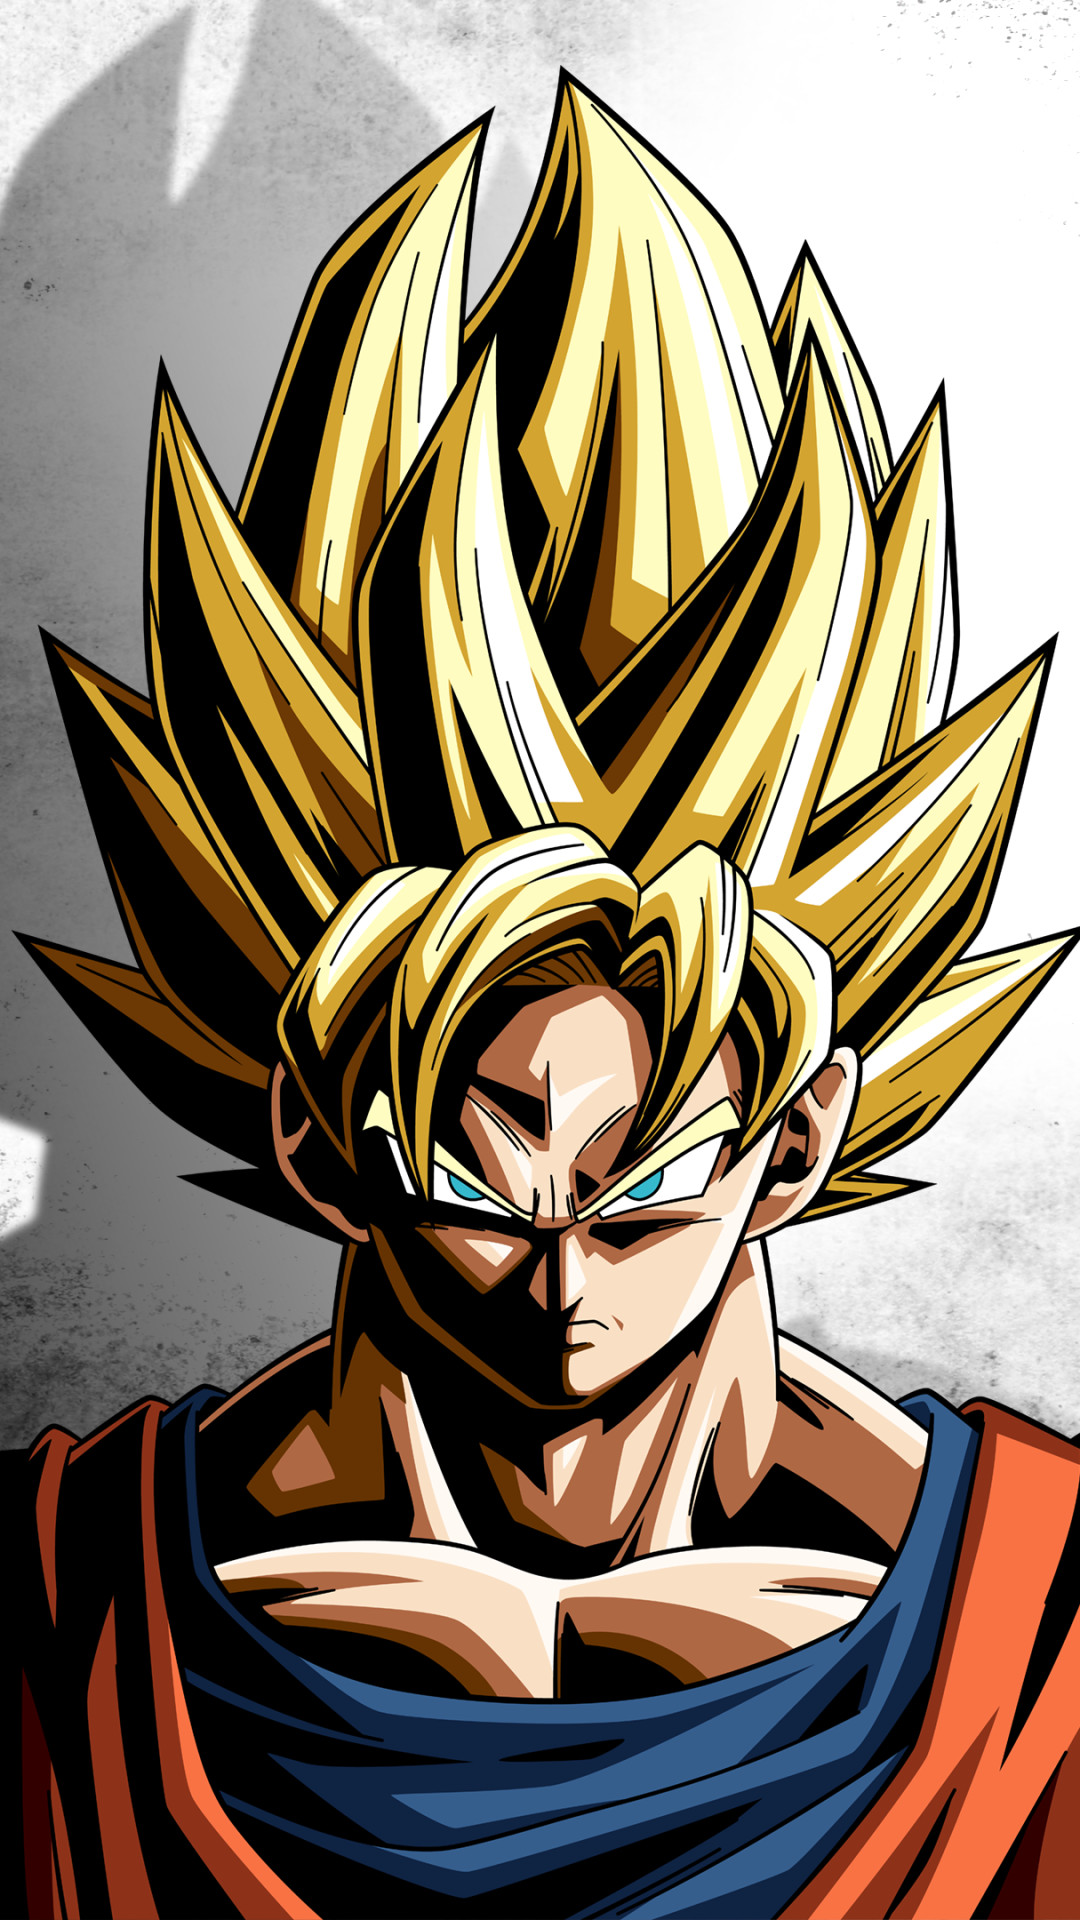 1080x1920 Dragon Ball Z Wallpapers For Mobile